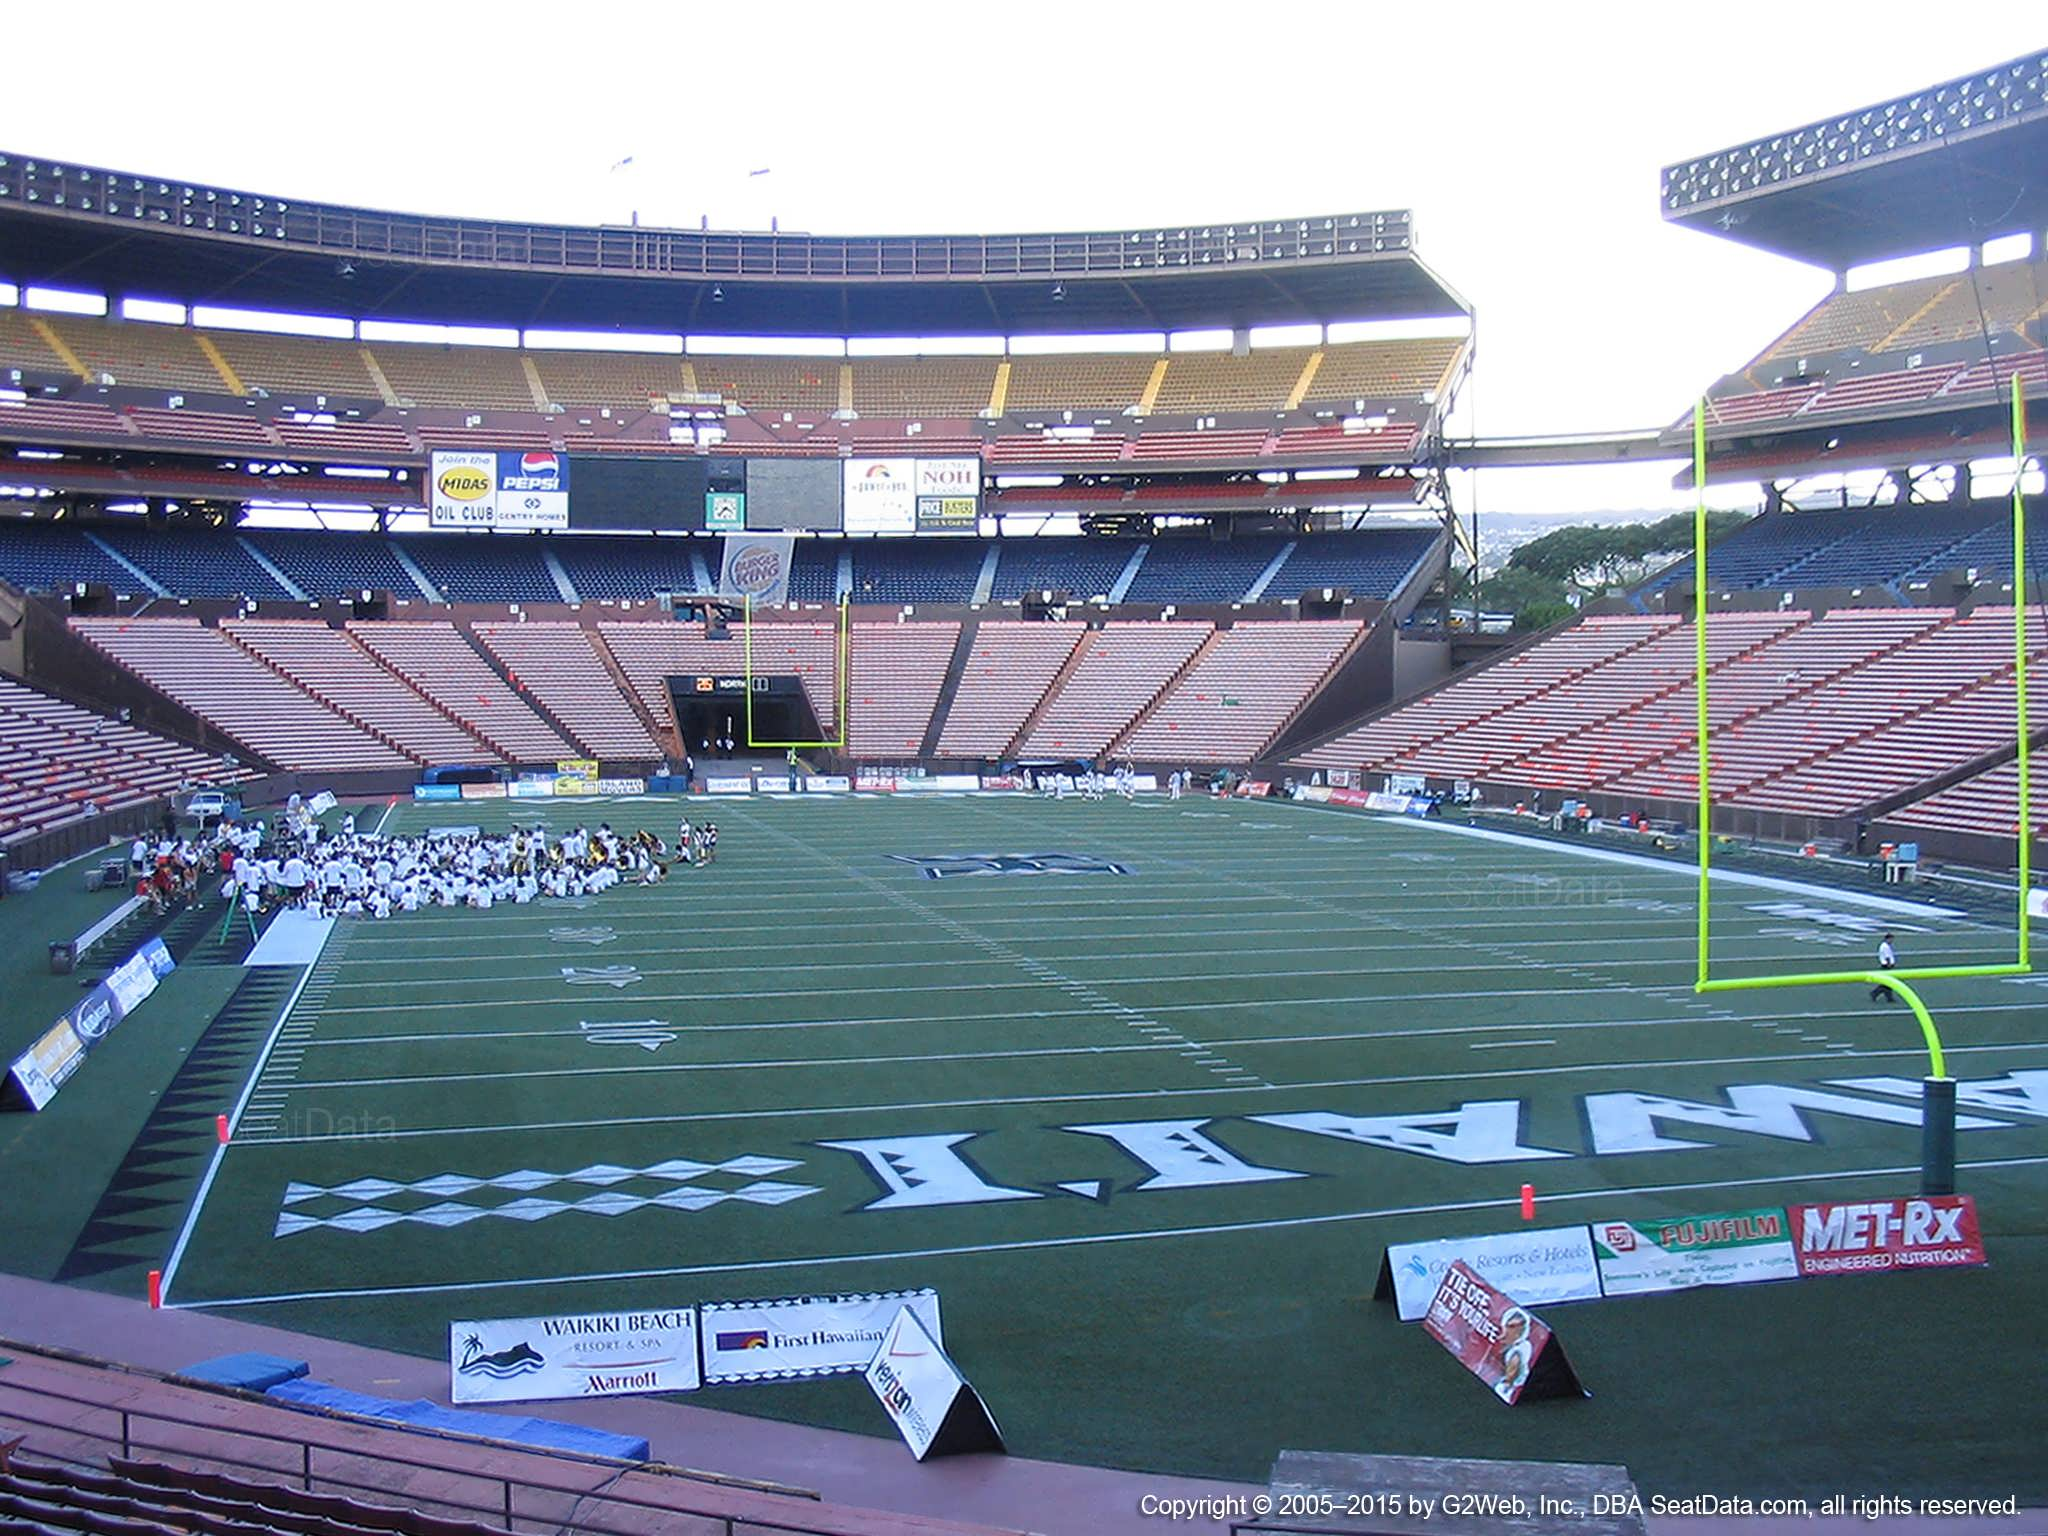 Seat View for Aloha Stadium Orange C